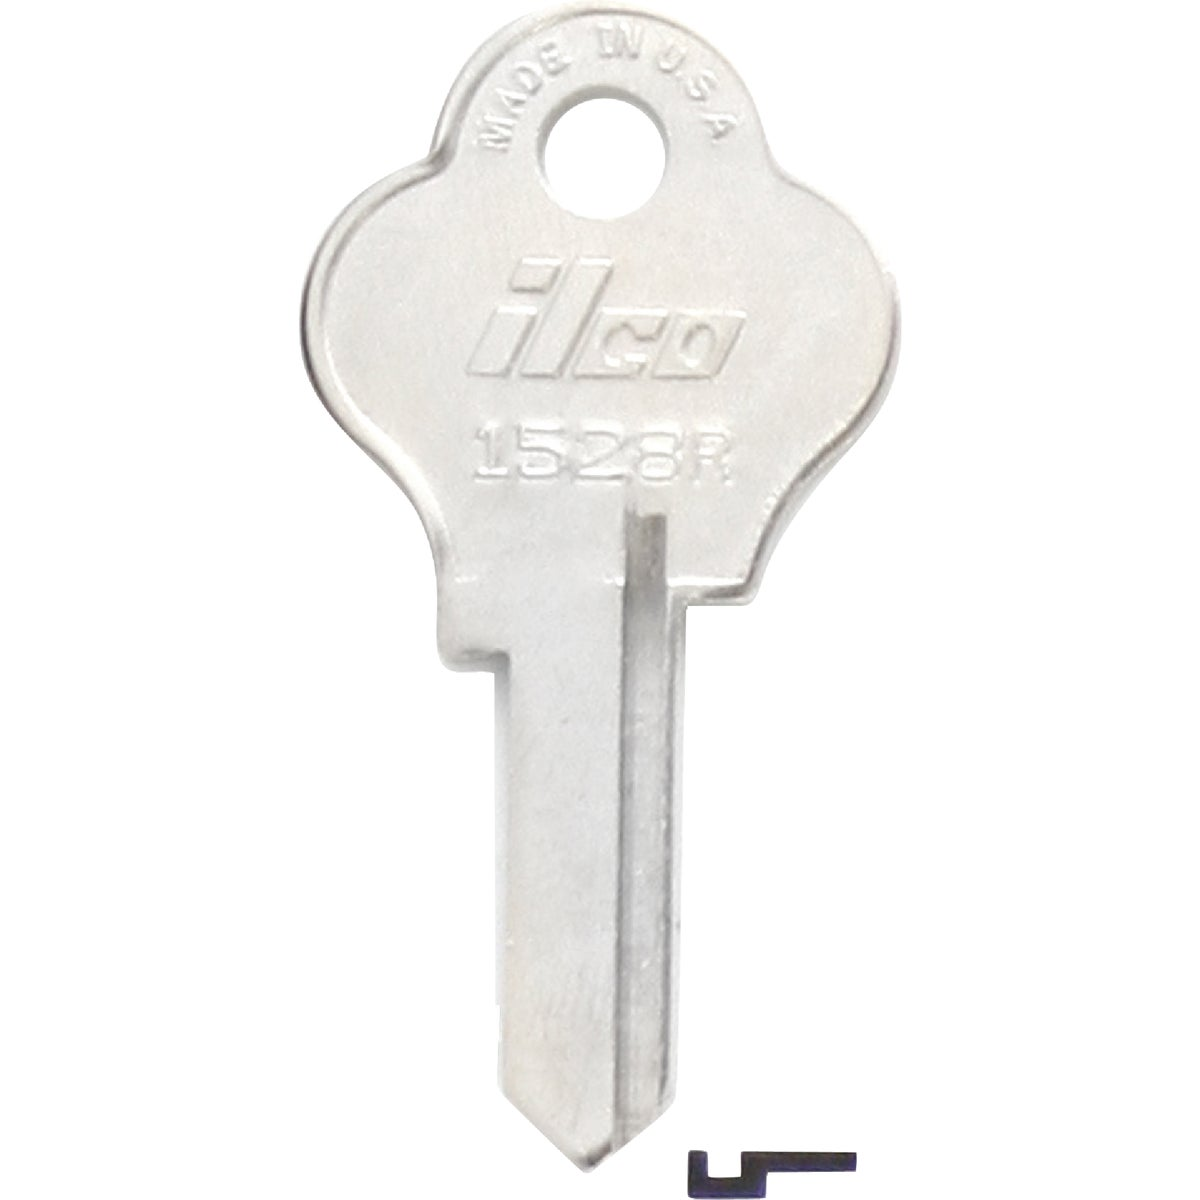 1528R EMCO STORM KEY - 1528R by Ilco Corp